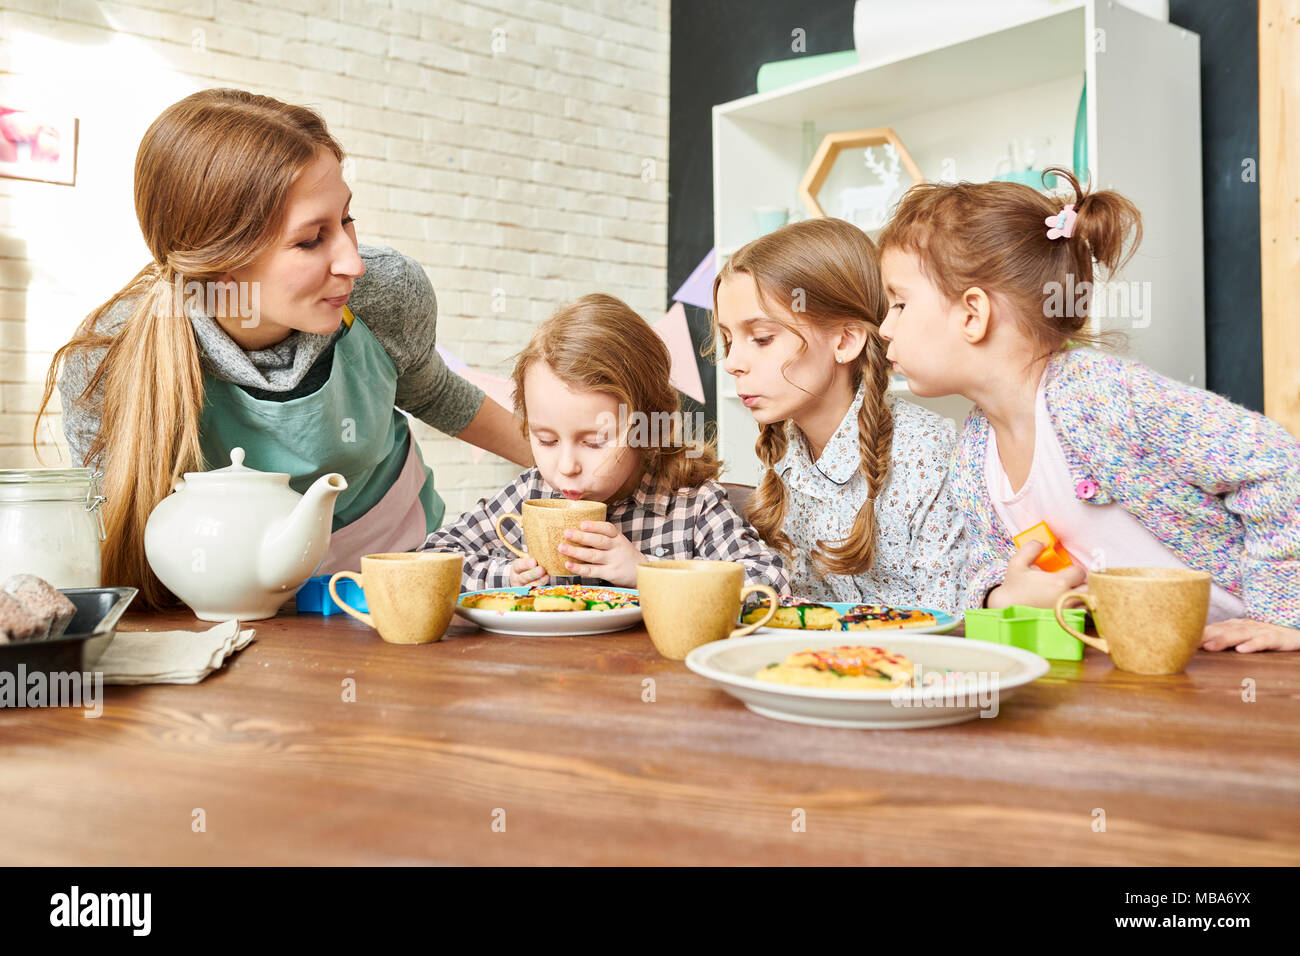 Loving Family at Dining Room - Stock Image